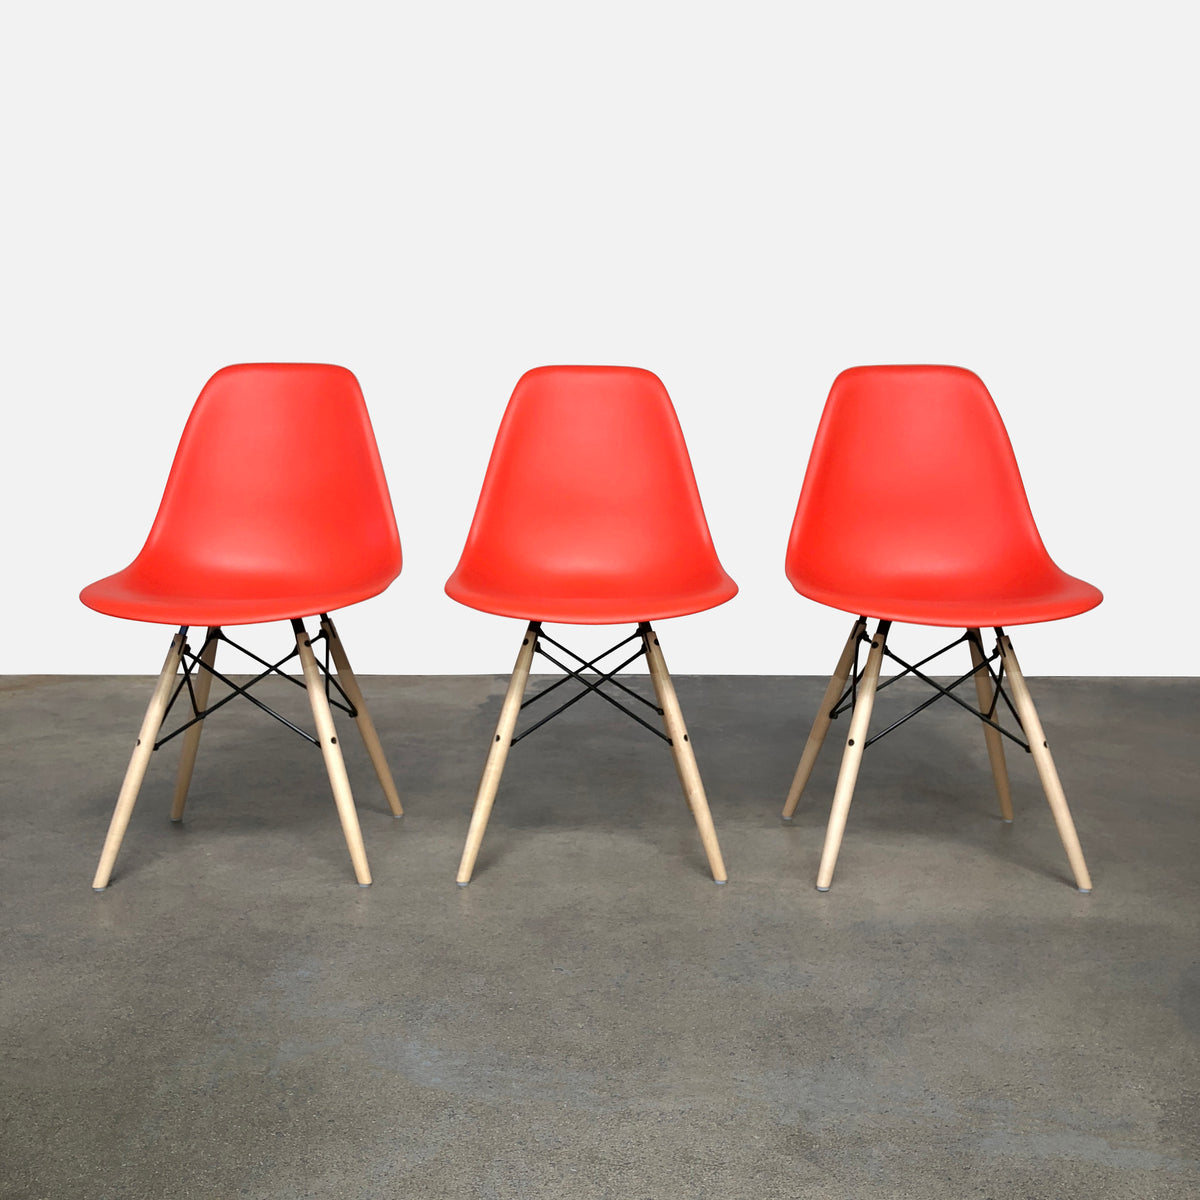 Eames Molded Plastic Side Chair with Dowel Base (3 in stock)